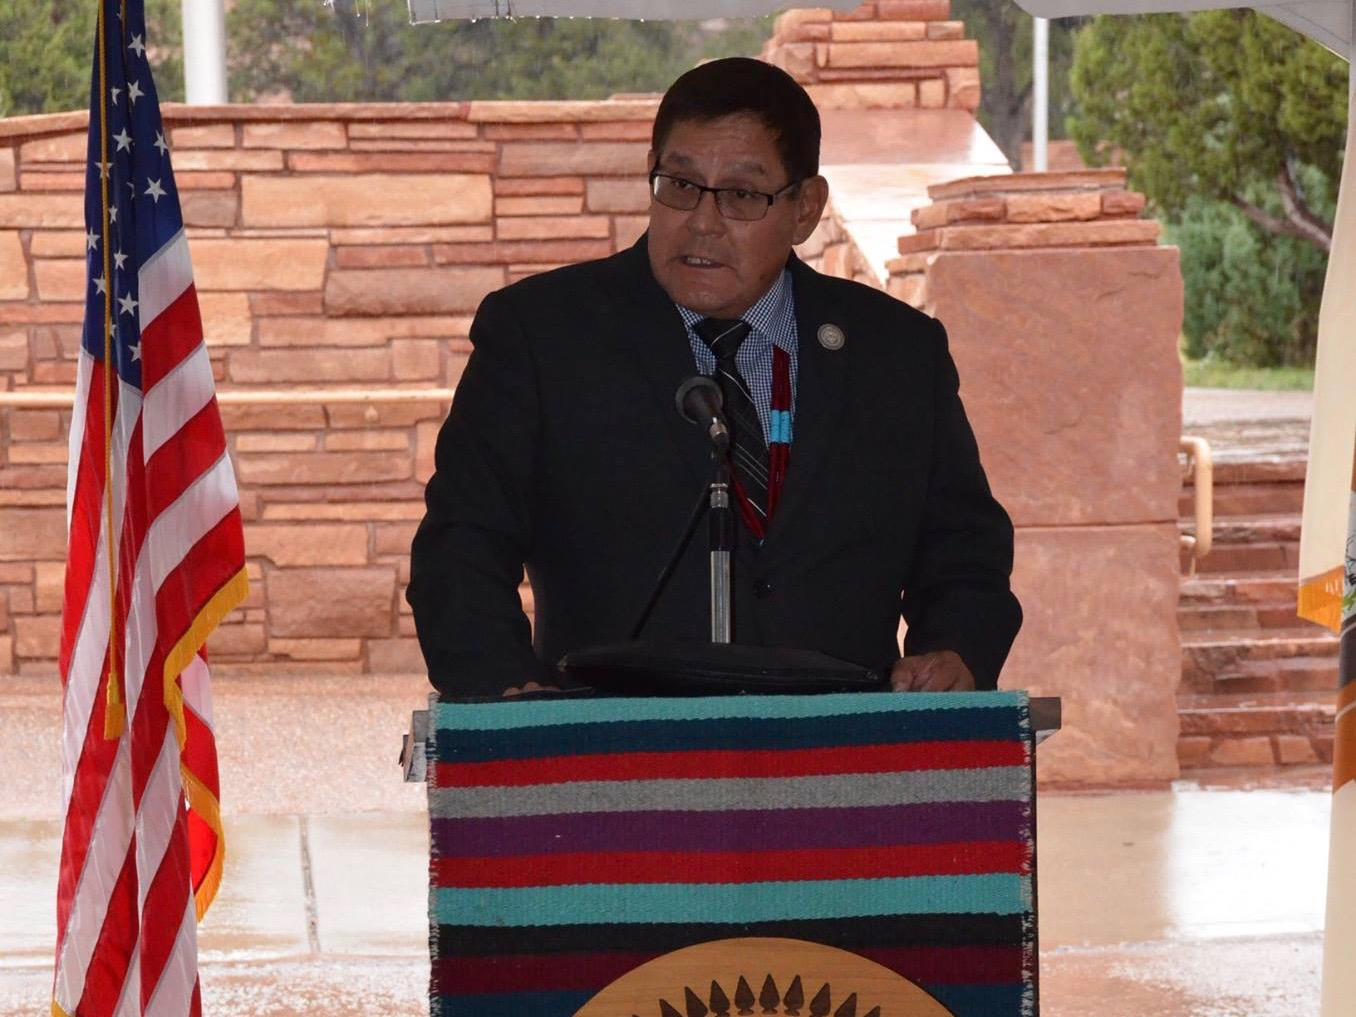 Navajo Nation lawmaker warns further action needed on hemp